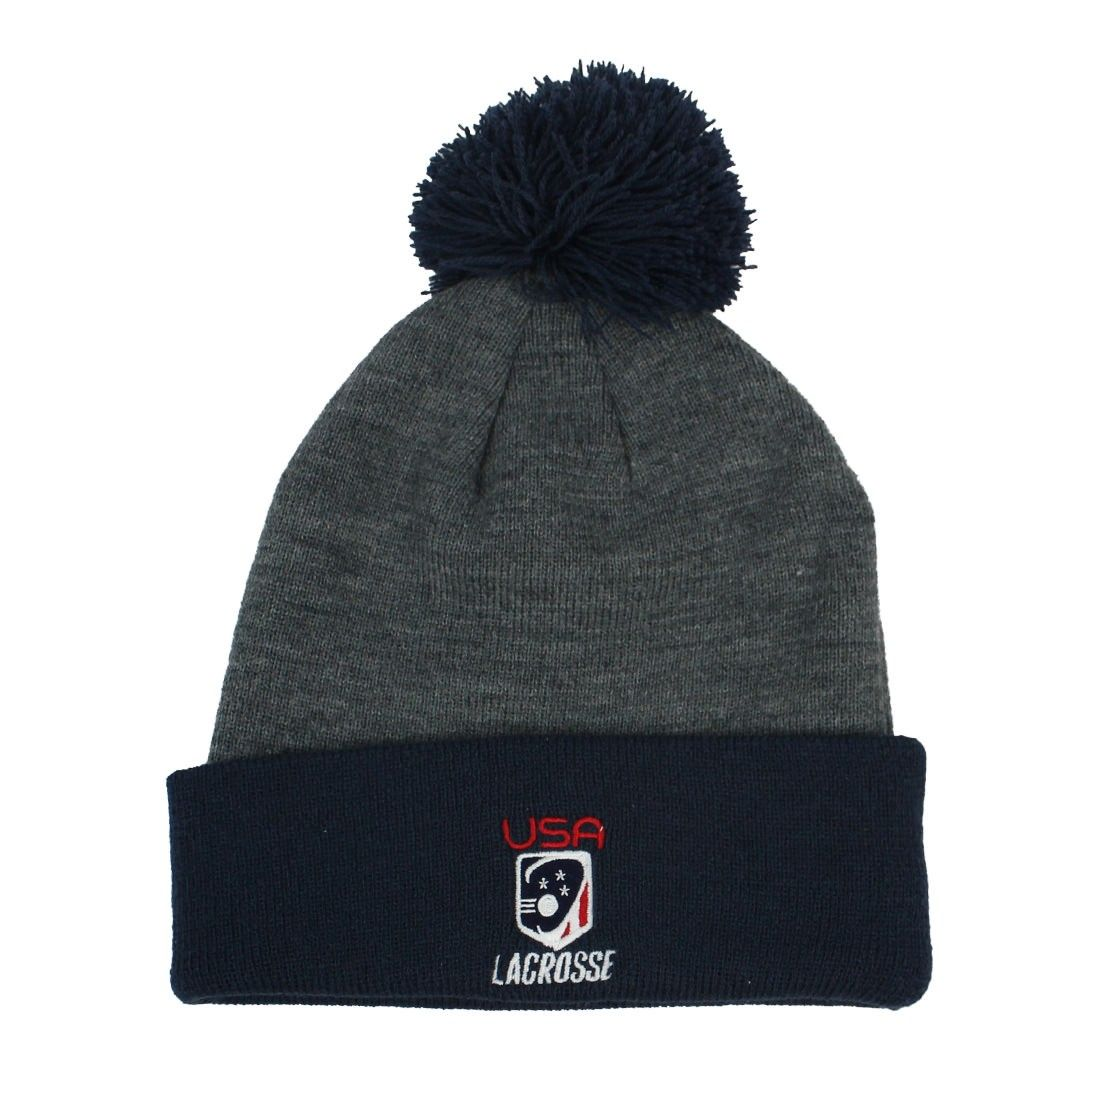 Nike Team USA Knit Hat Navy Pom Pom on top of hat Front  Nike USA lacrosse  logo Back White Nike Check Warm 34cfa4879271